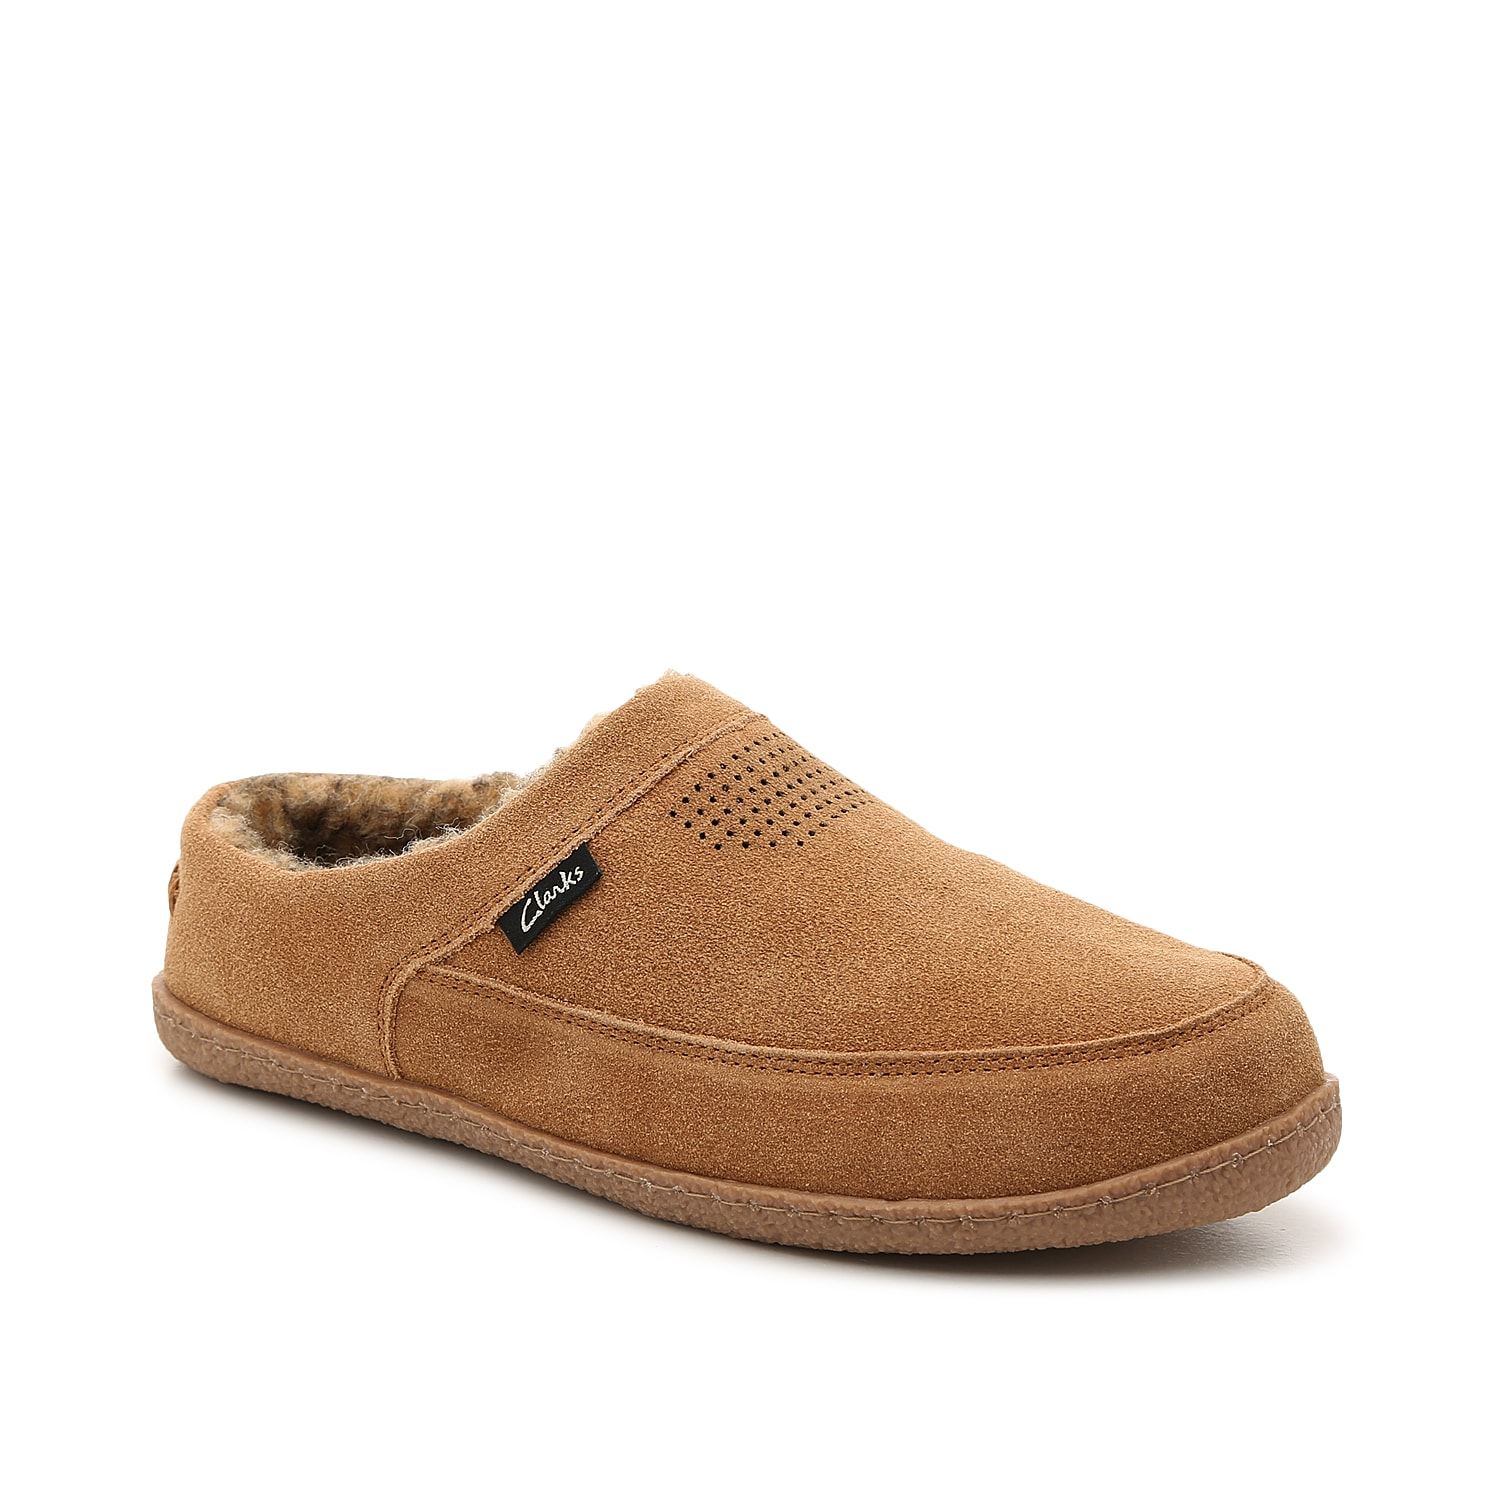 Stay comfortable around the house when wearing the Clog slipper from Clarks. This slip-on features a suede construction and a faux fur lining to keep your feet cozy all year long!